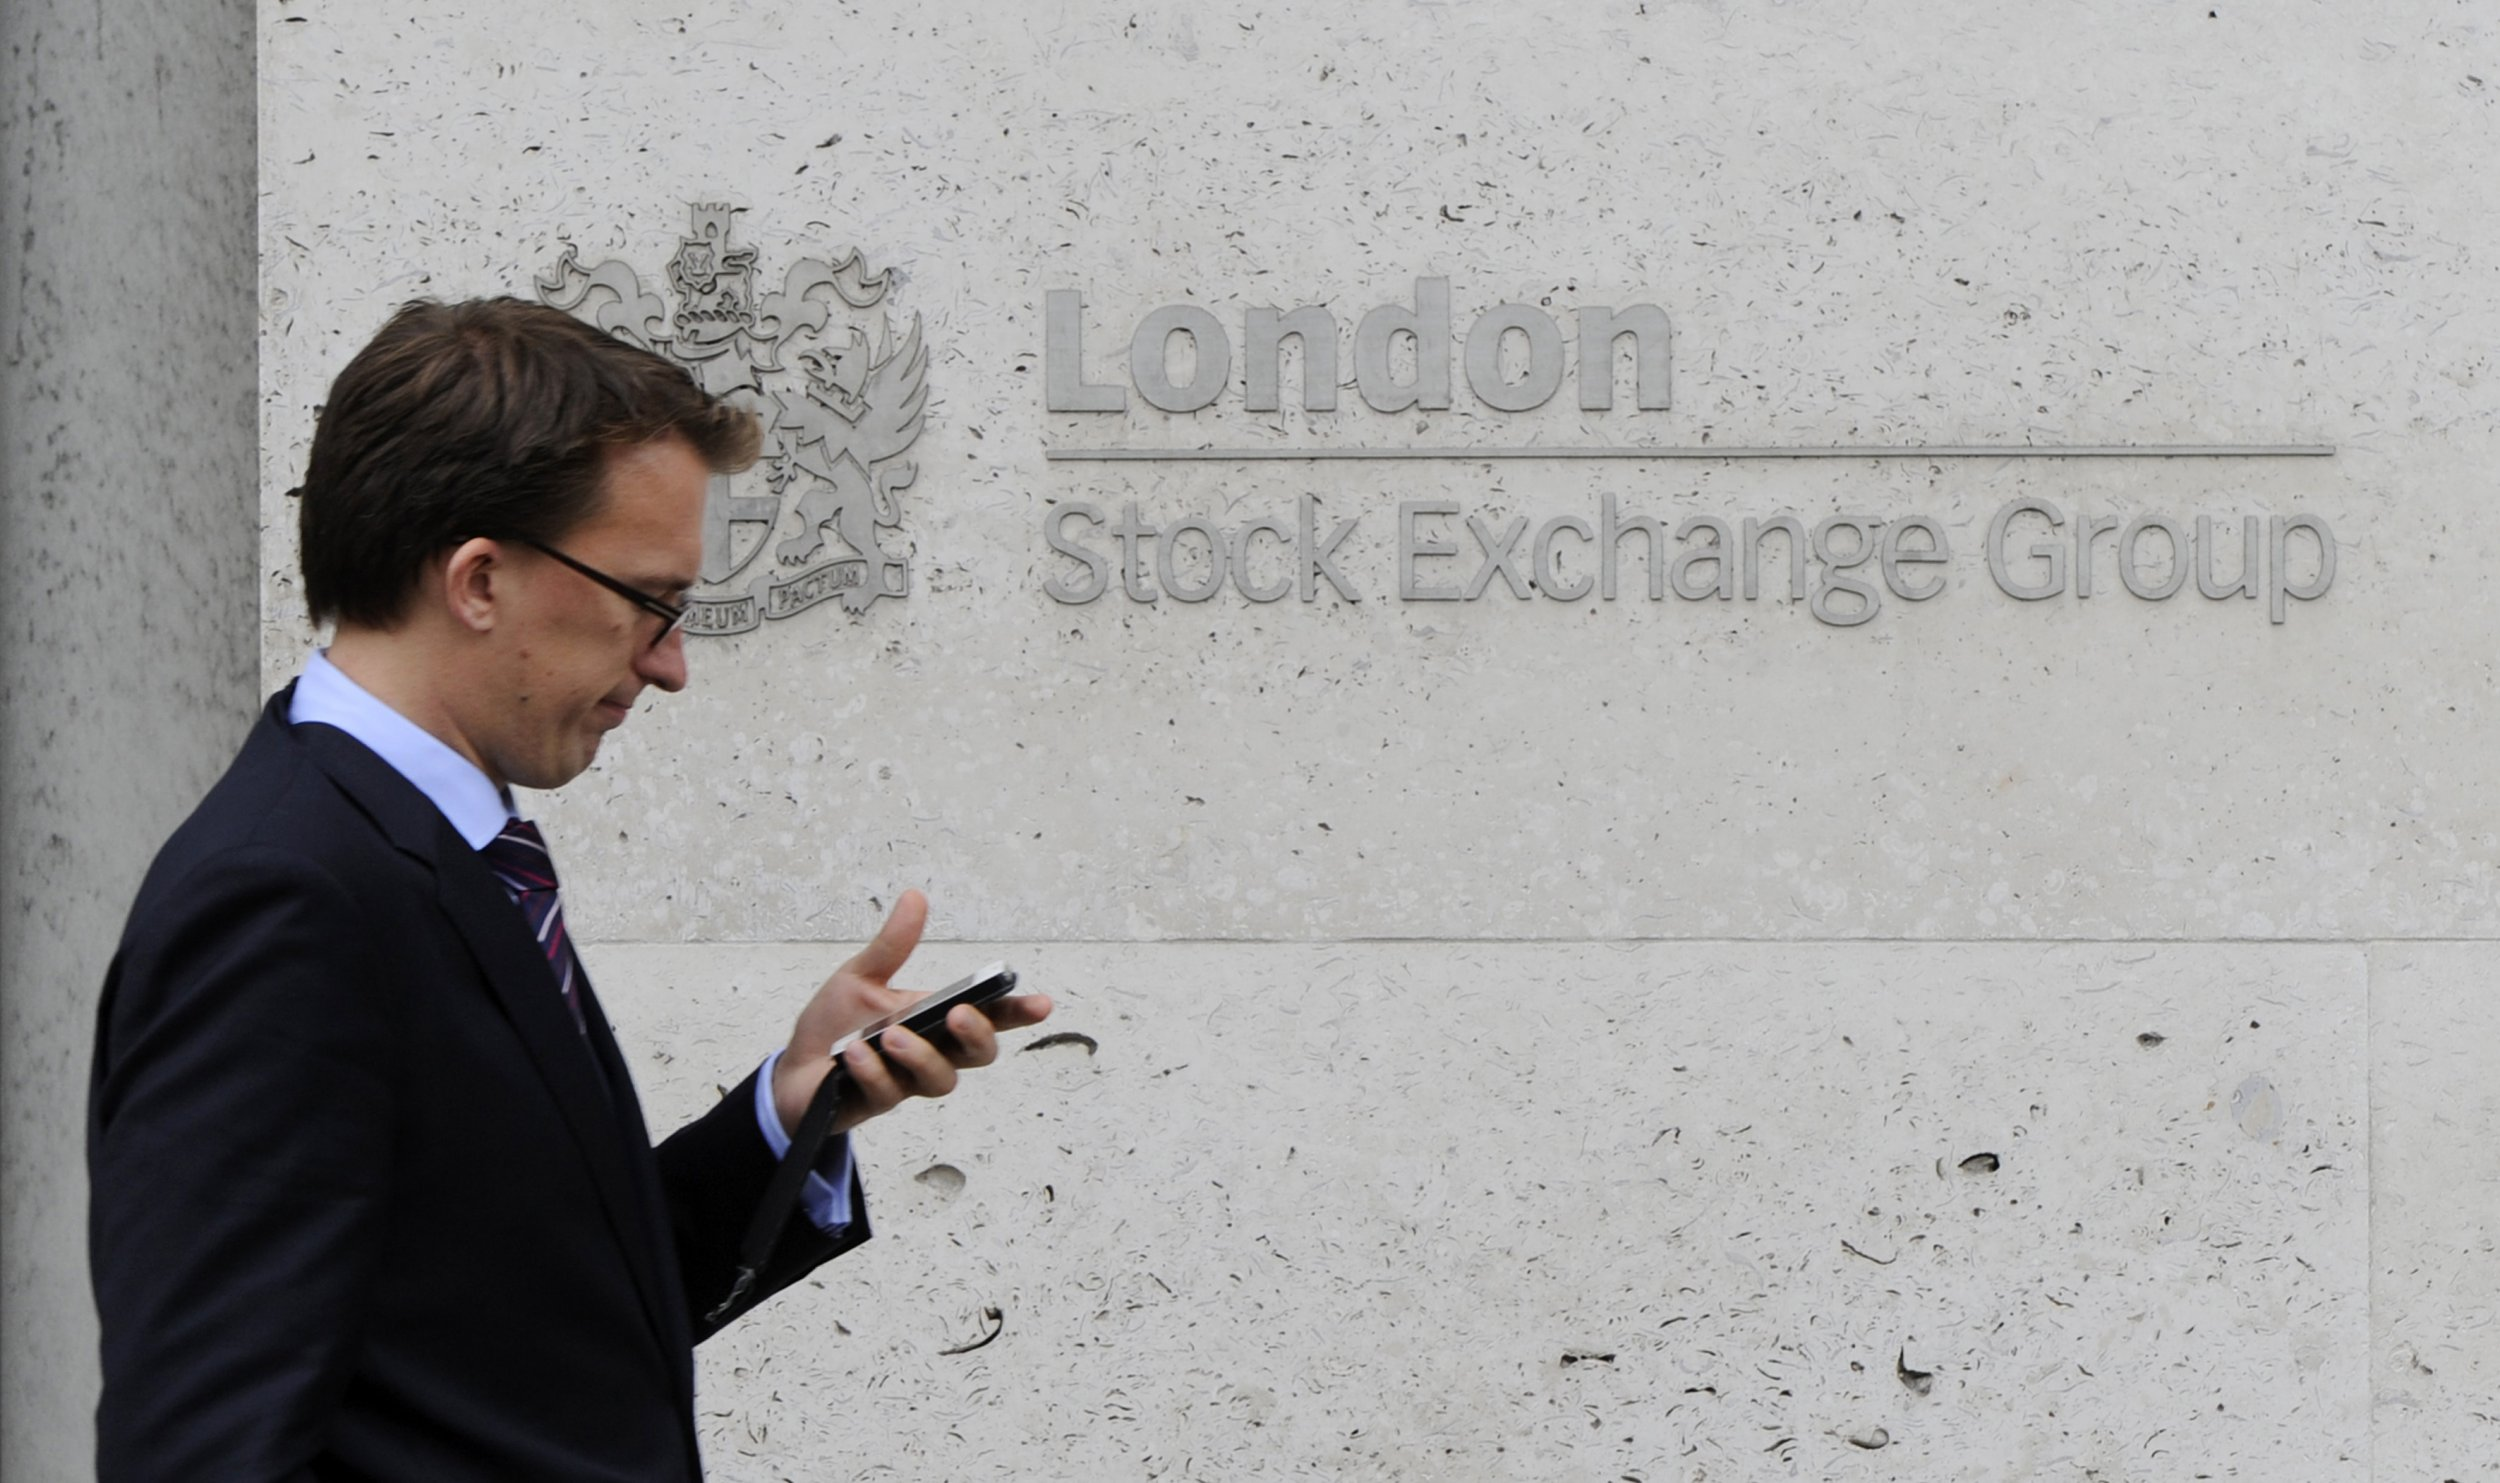 Brexit Bank Shares Britain